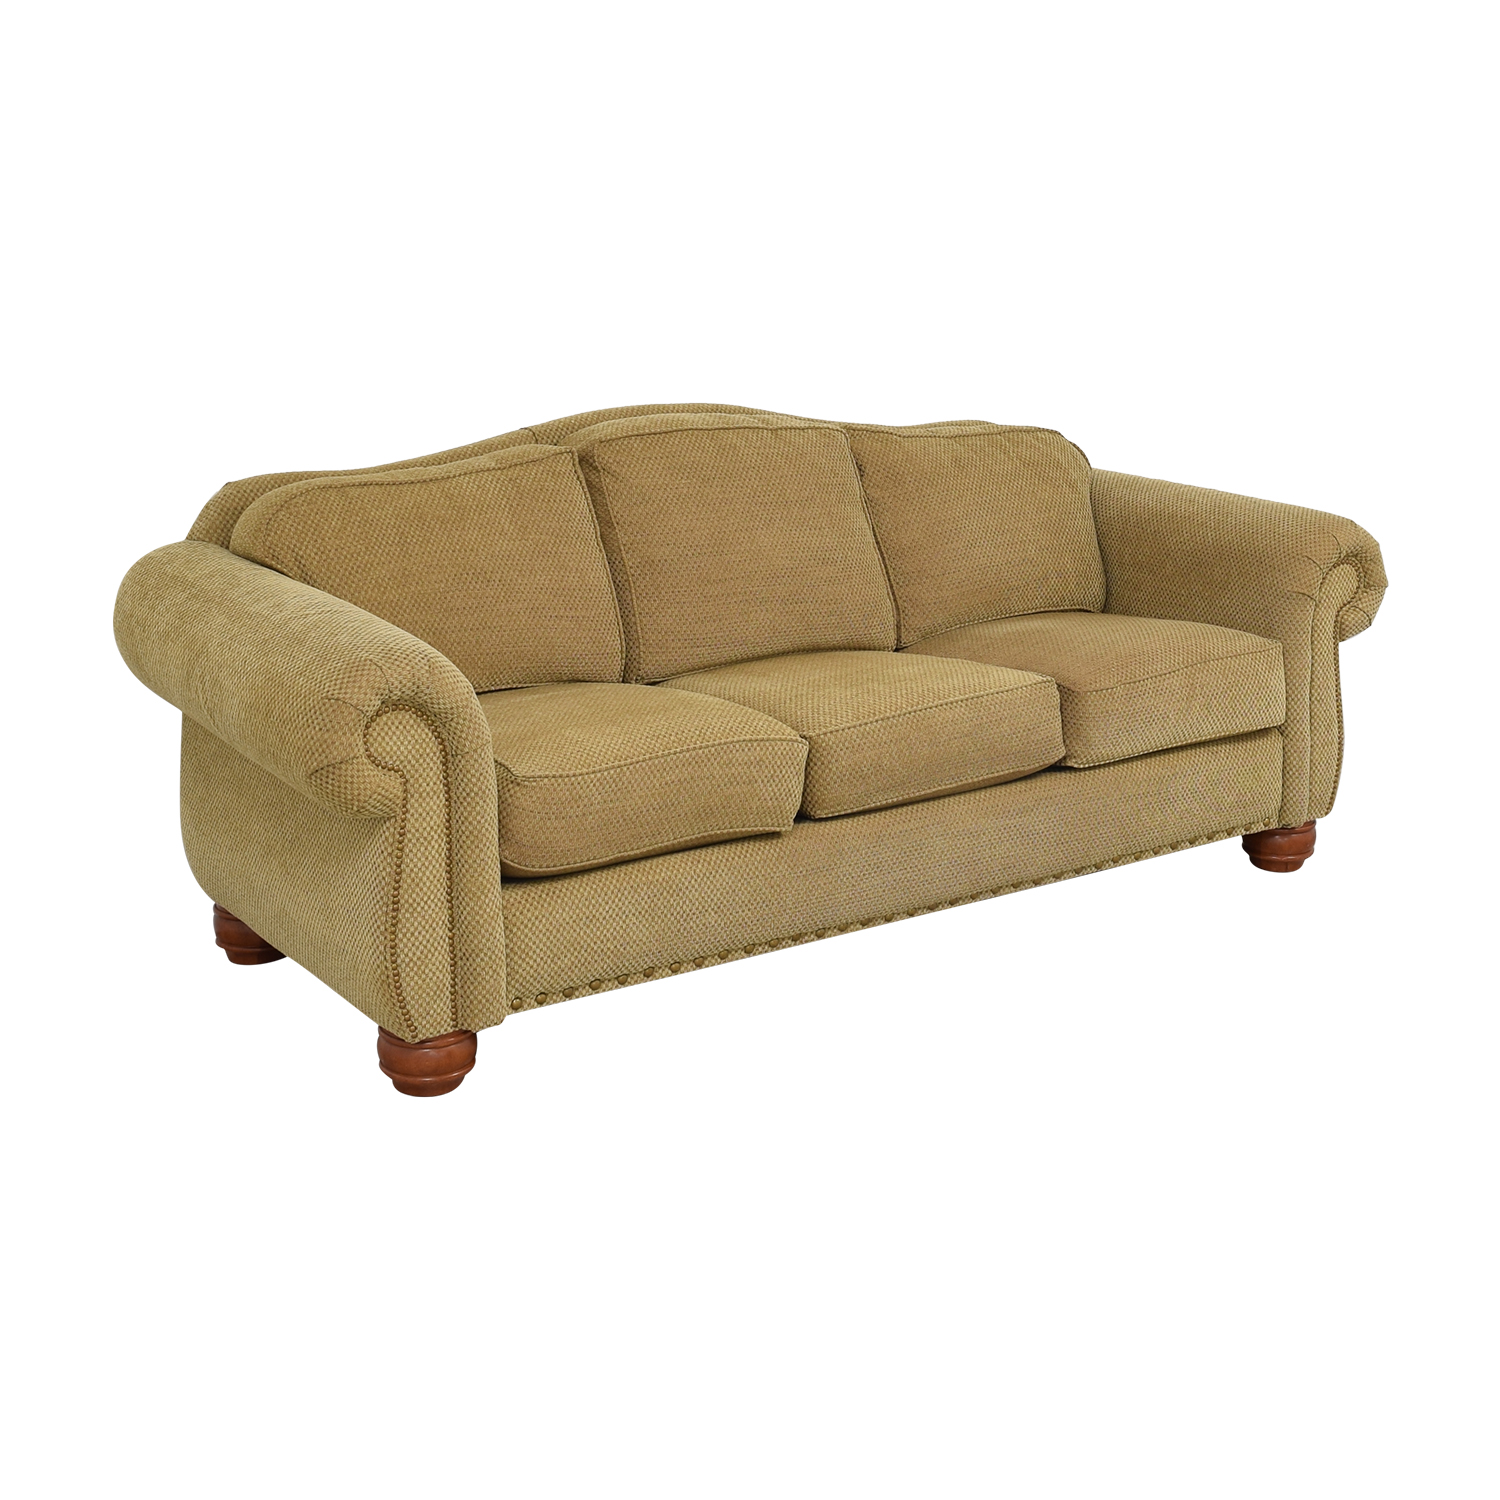 La-Z-Boy La-Z-Boy Three Cushion Sofa for sale